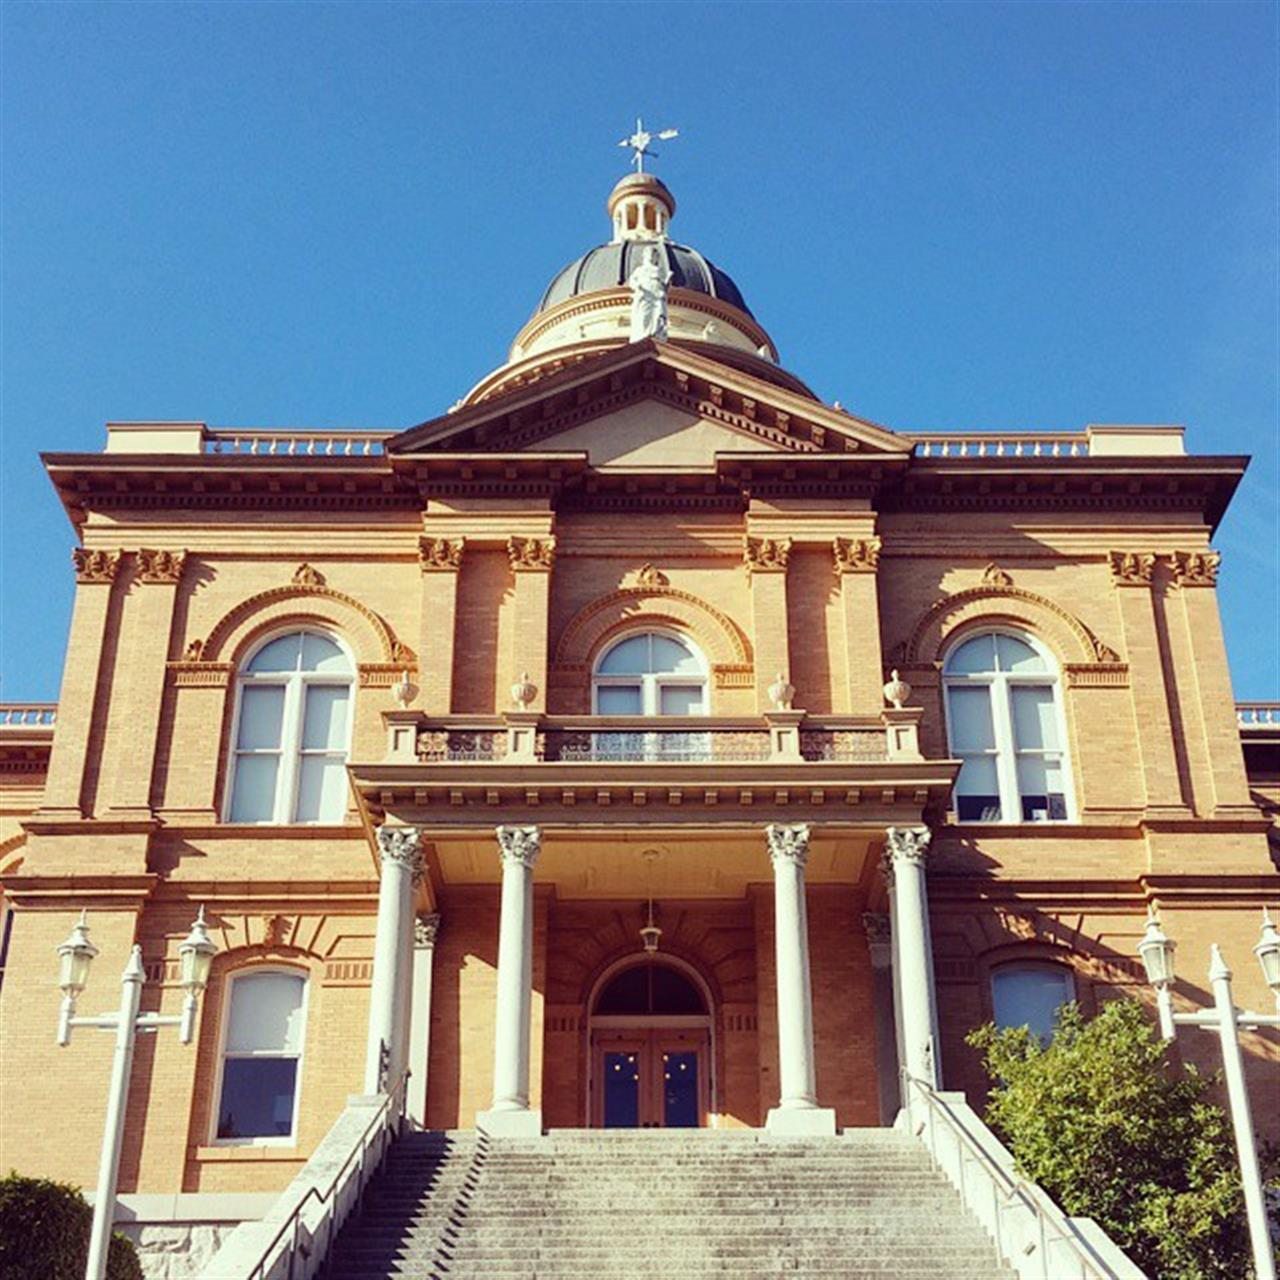 Placer County Museum and Superior Court. #leadingrelocal #lyonrealestate #auburnca #historiccourthouse #placercounty